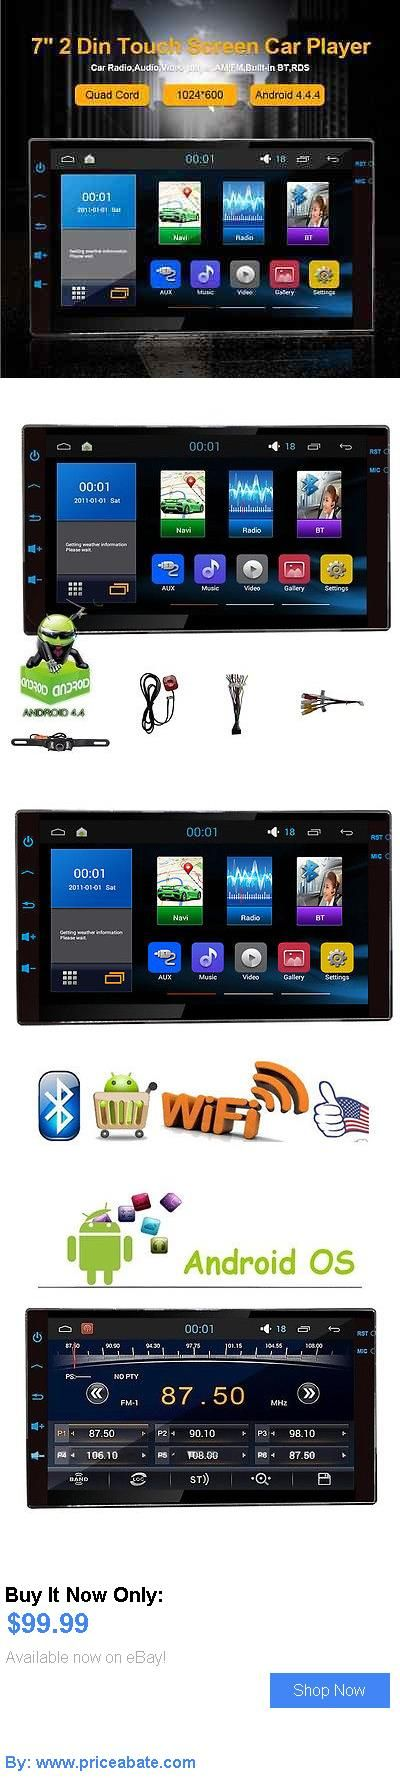 Vehicle Electronics And GPS: 7Android4.4 Quad Cord Double 2Din Hd Car Stereo Gps Navi Player Bluetooth Radio BUY IT NOW ONLY: $99.99 #priceabateVehicleElectronicsAndGPS OR #priceabate